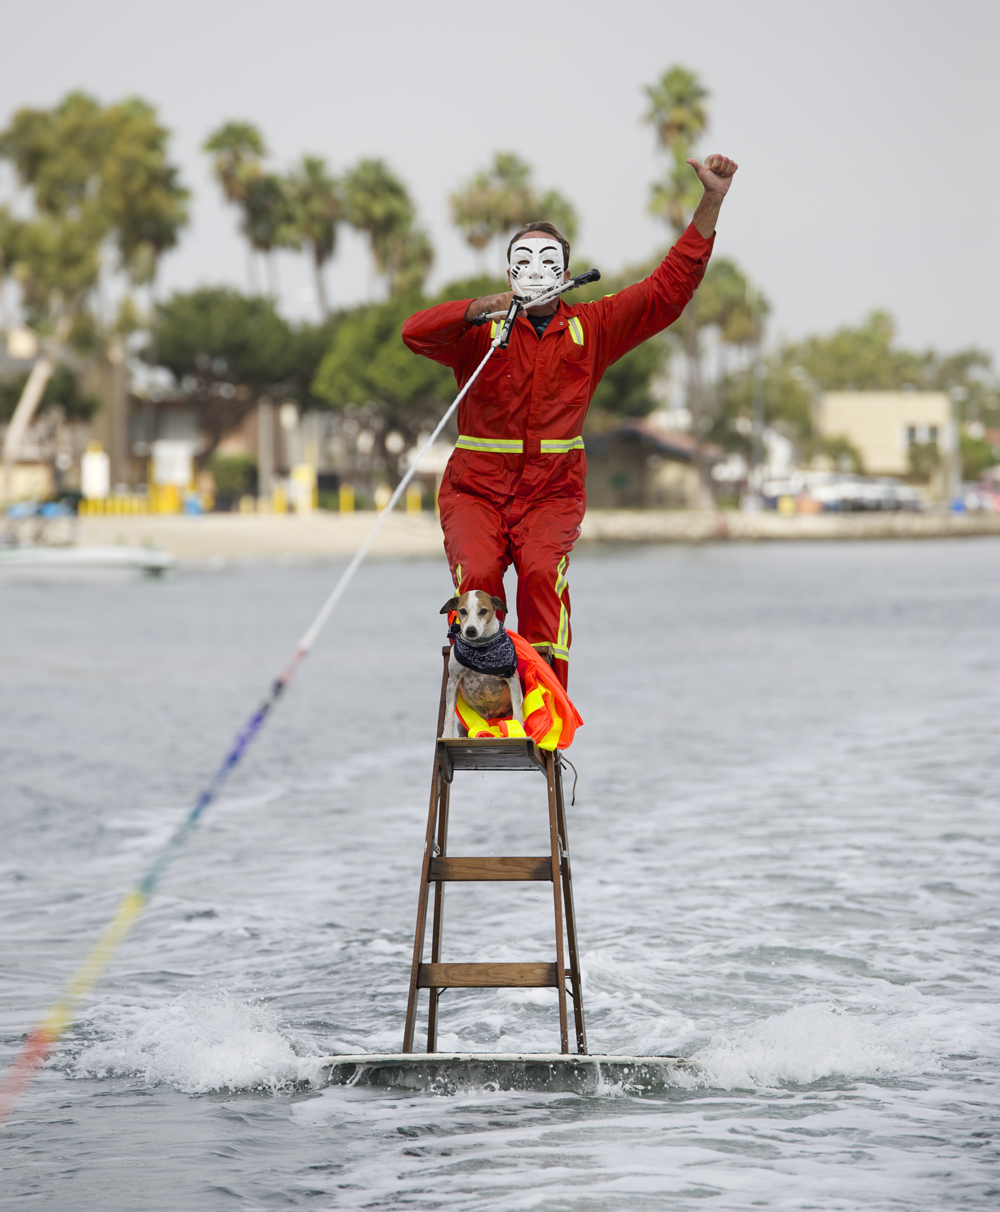 water-skiing-spooktacular-2014-doug-pearce-dog-disc-ladder